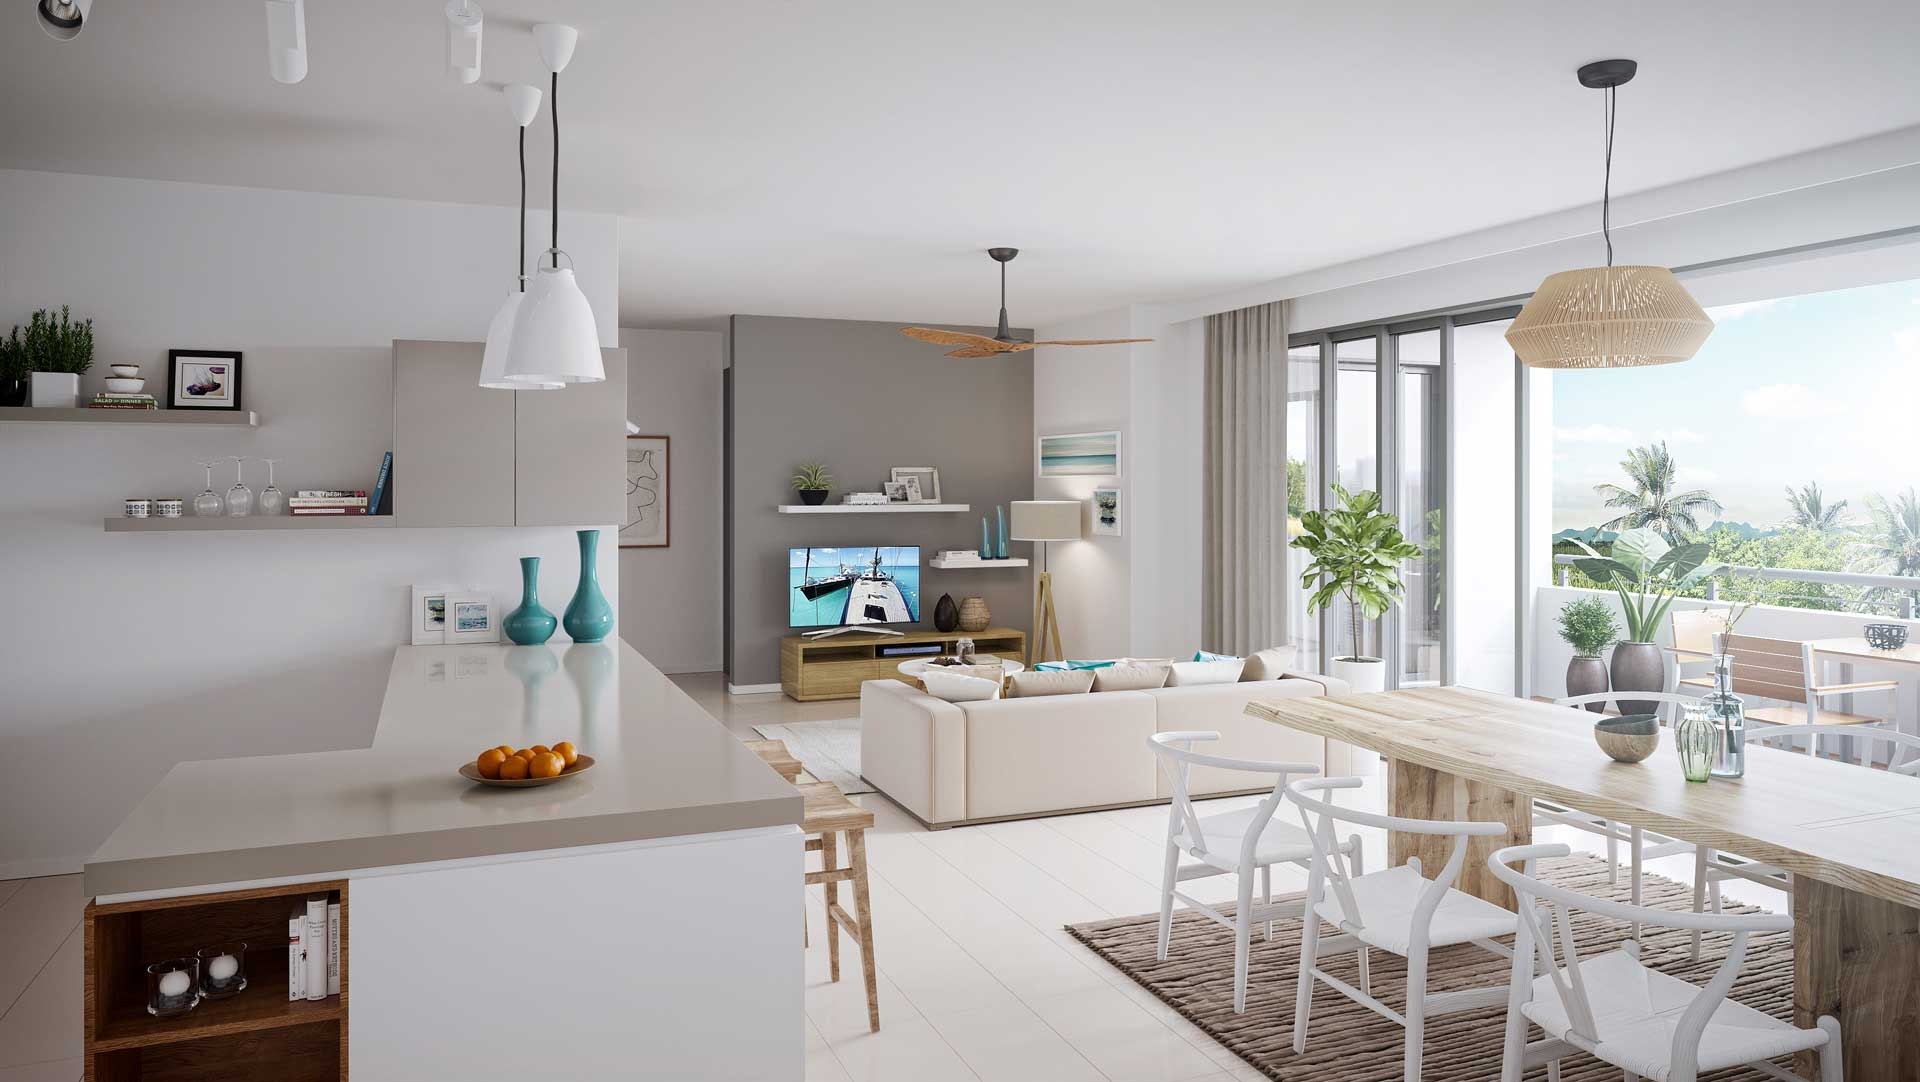 CGI-01-Interior-Living-dining-kitchen_V2__280116_BJ